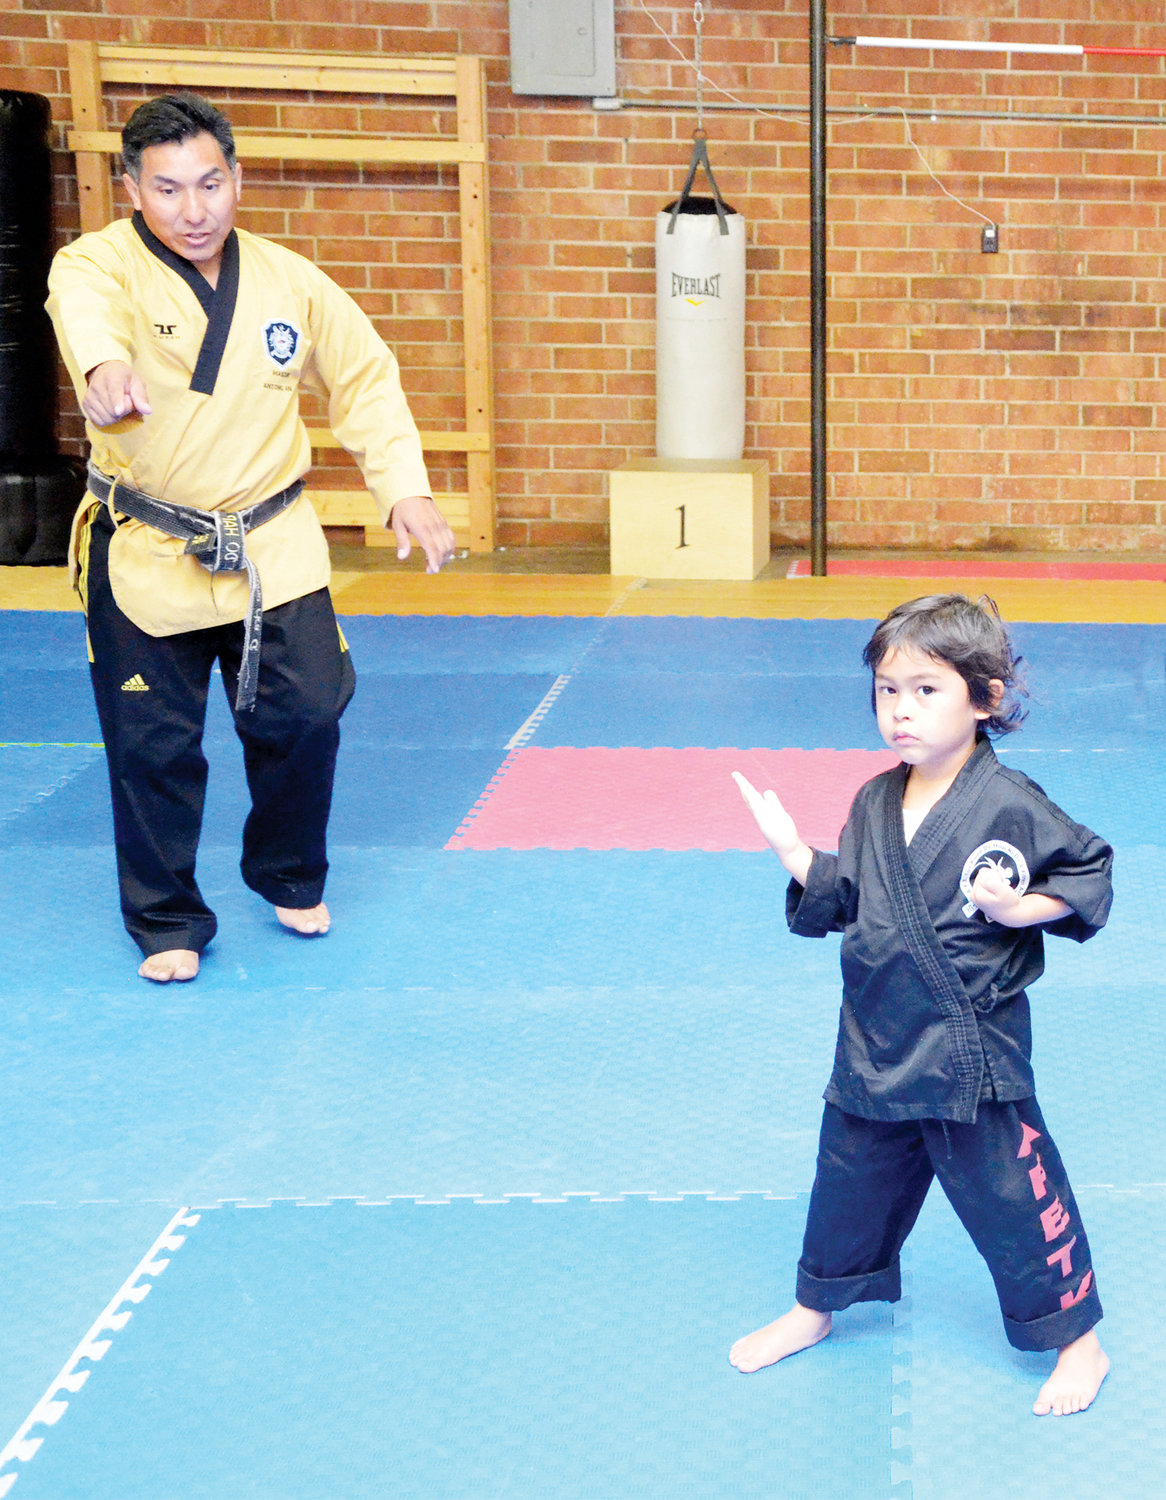 Master Antonio Ara instructs Violeta Trujillo at AFE TKD Martial Arts The Best of Siler City Academy on 11th Street on Monday. Trujillo was attending one of the many classes available at the school.